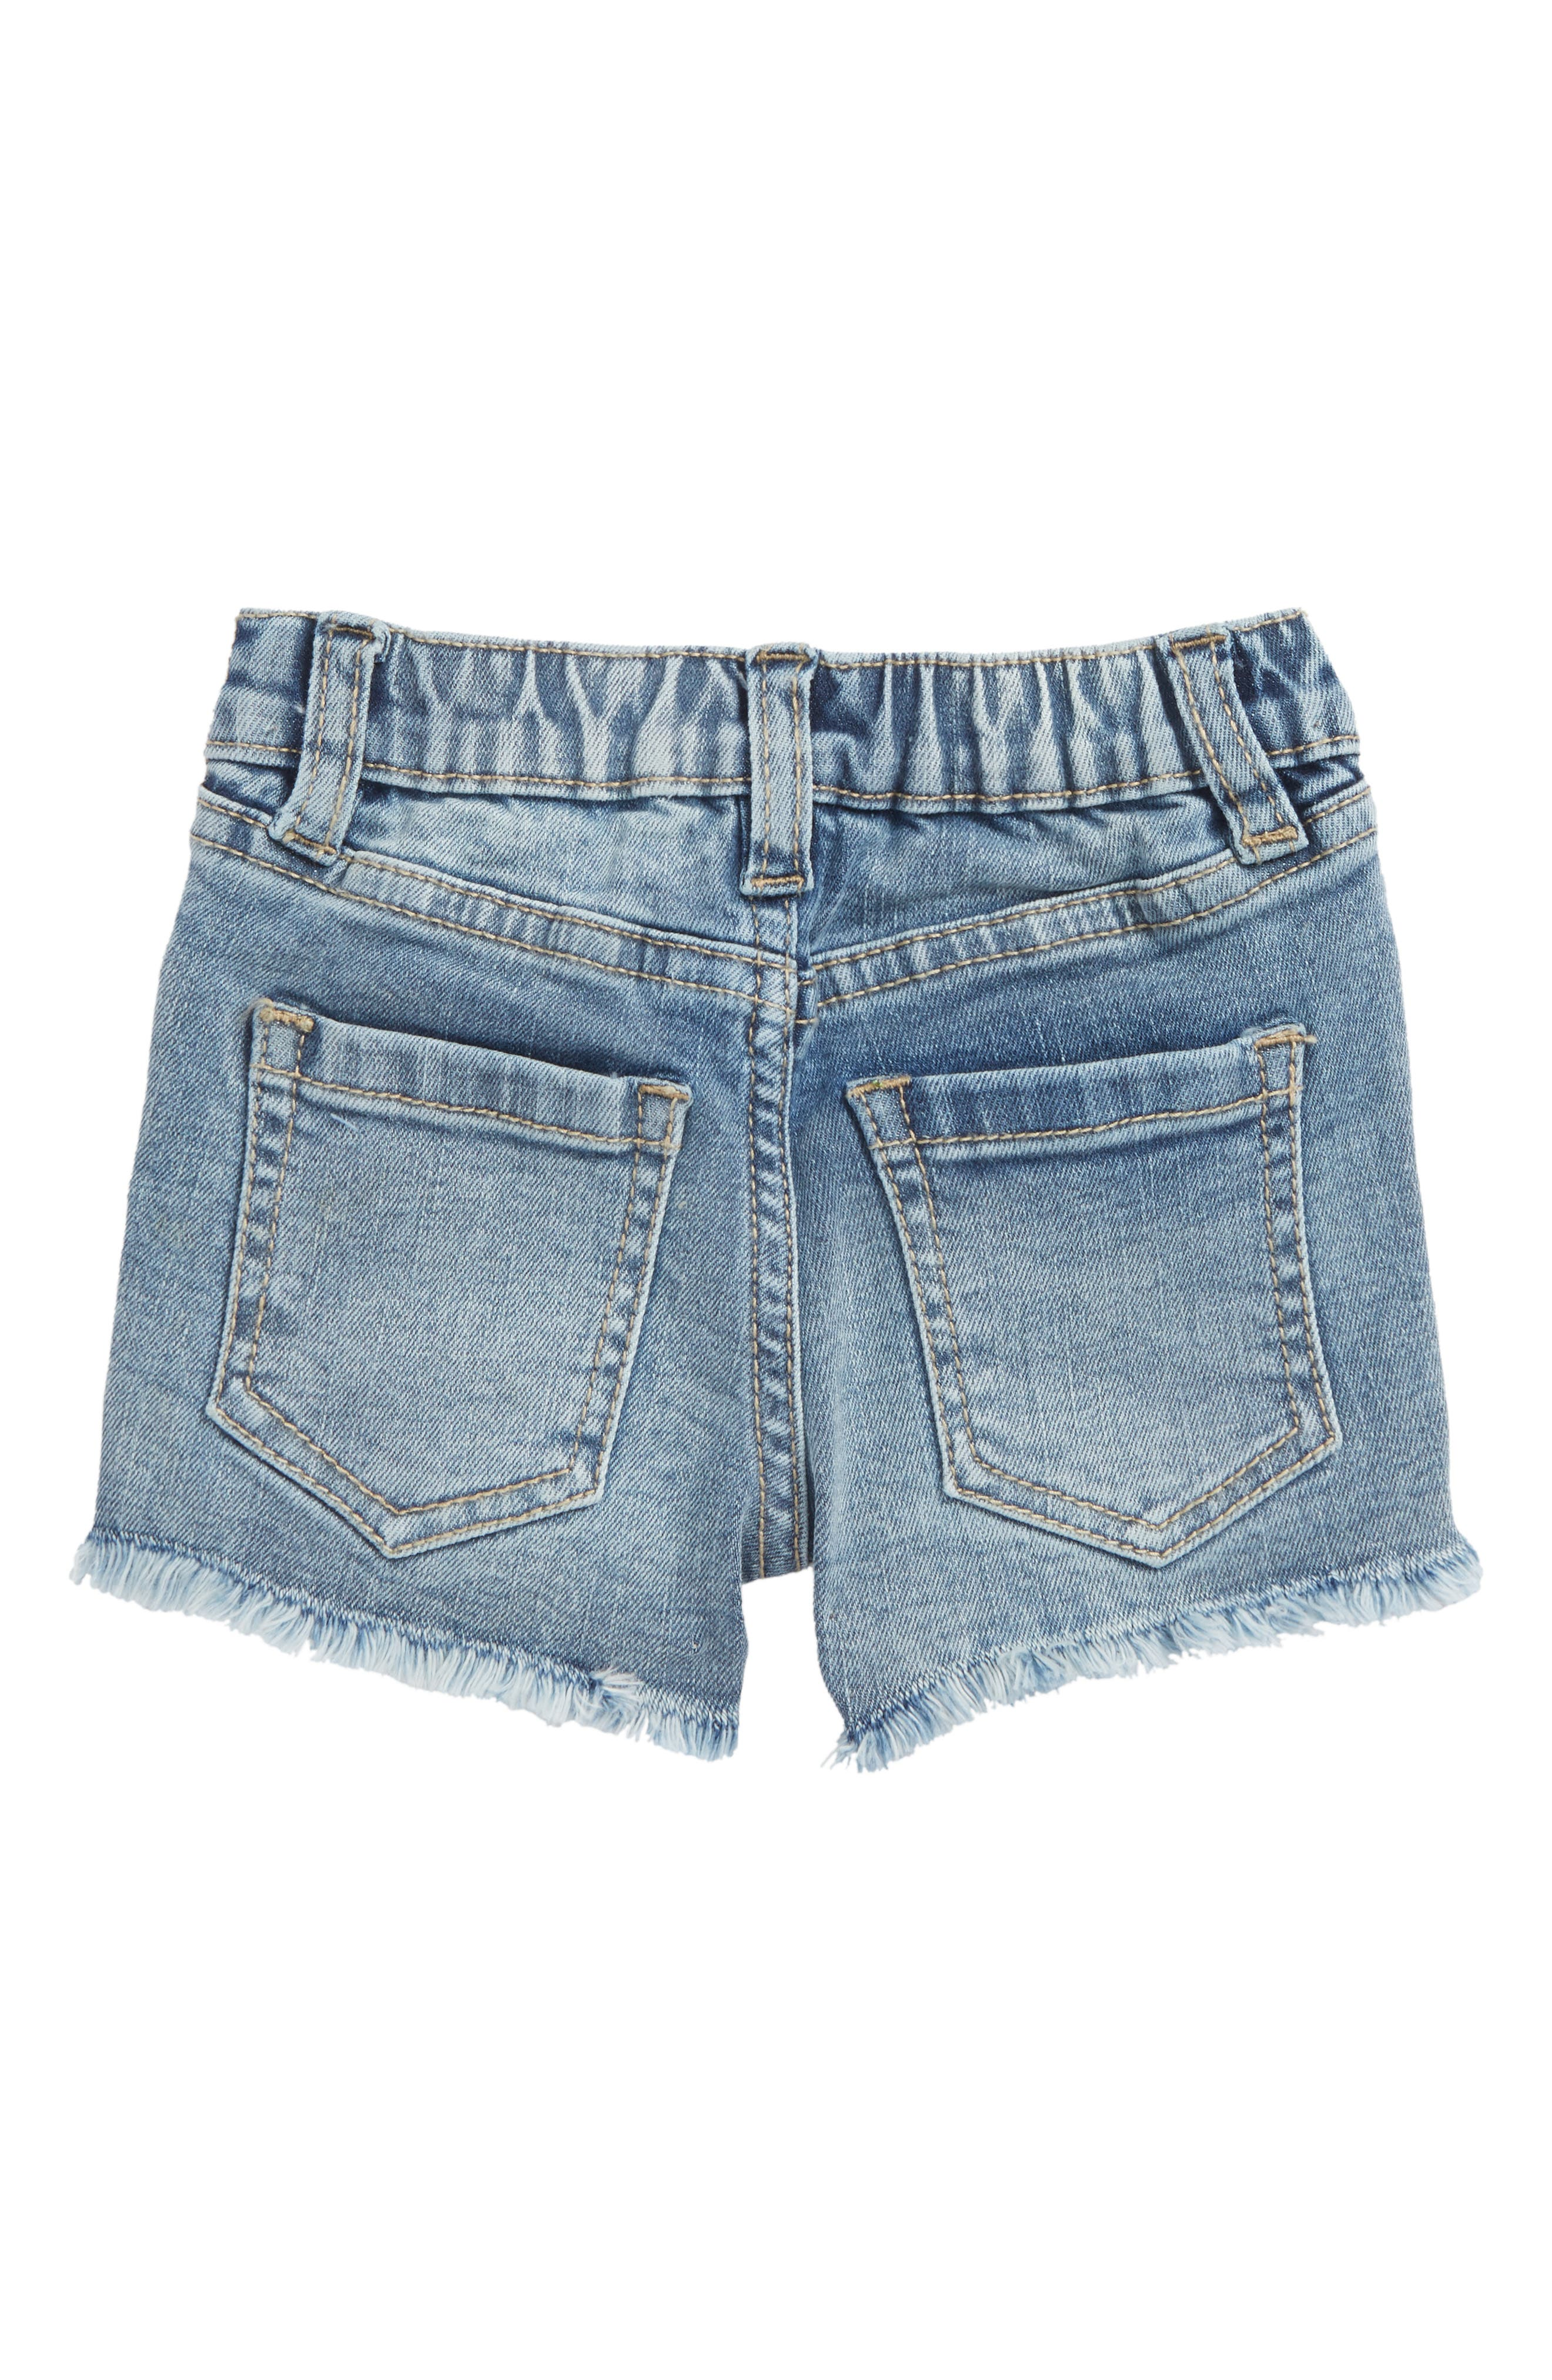 Embroidered Frayed Hem Denim Shorts,                             Alternate thumbnail 2, color,                             416